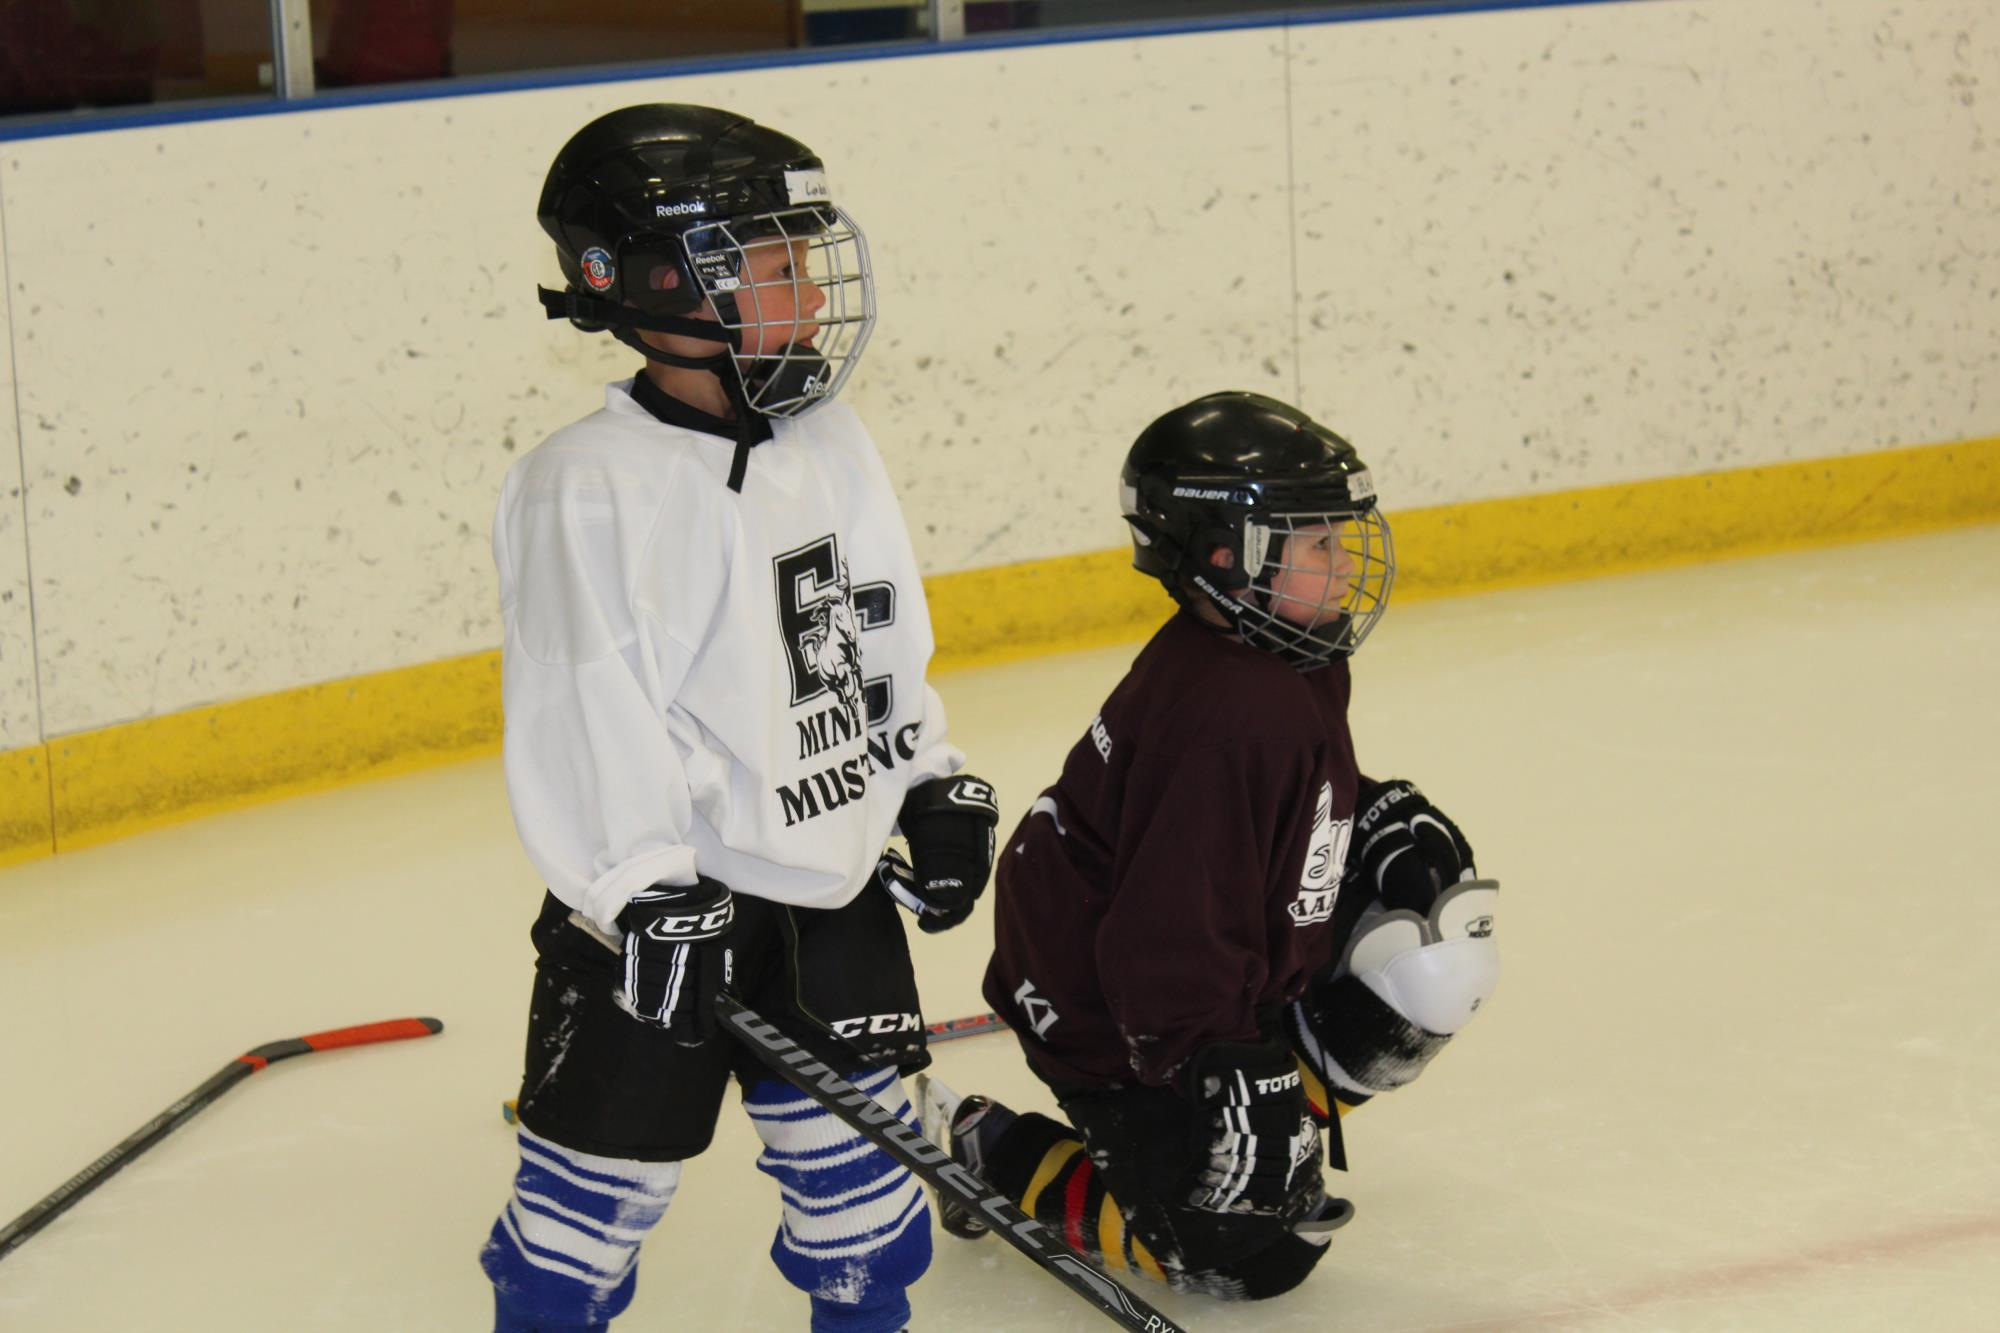 Intro to Hockey Summer, 2 young boys on ice